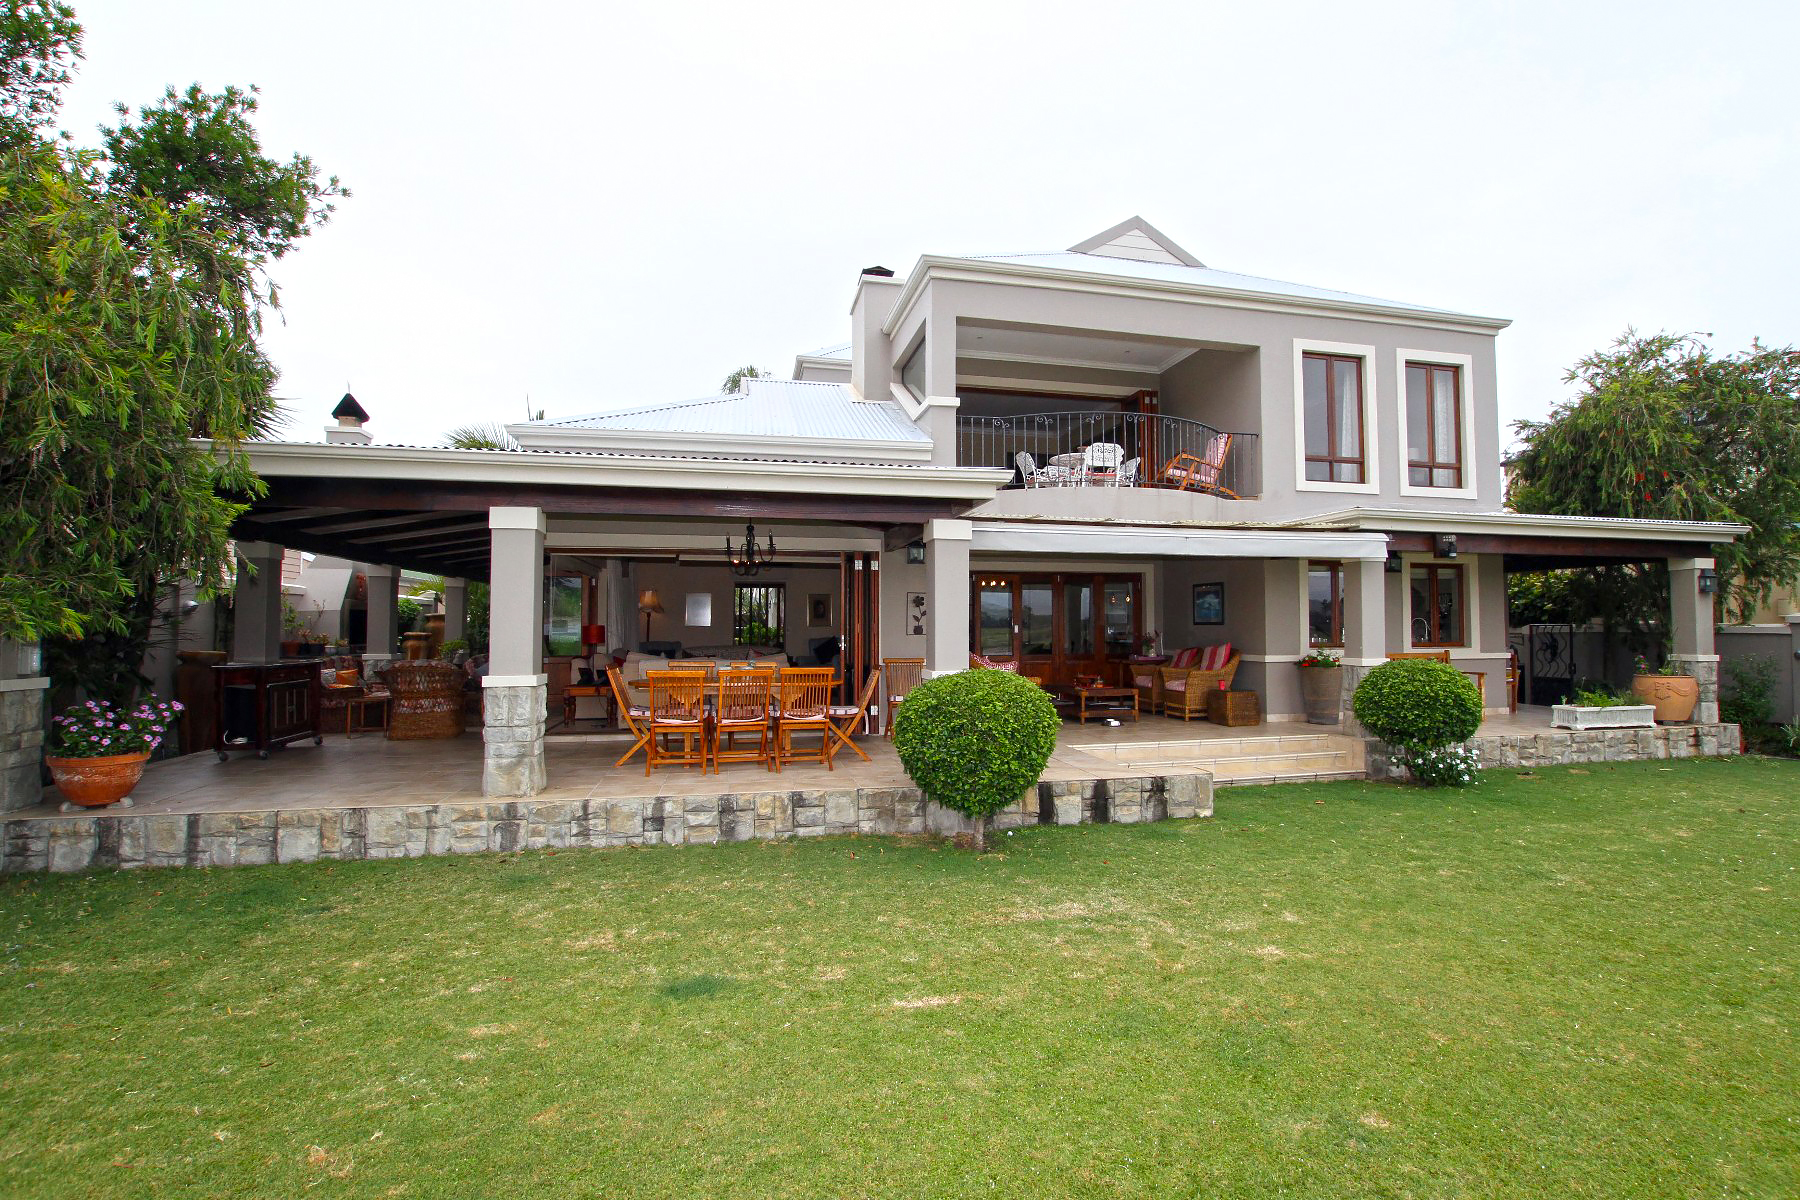 Maison unifamiliale pour l Vente à Gem on the Riverfront Plettenberg Bay, Cap-Occidental, 6600 Afrique Du Sud